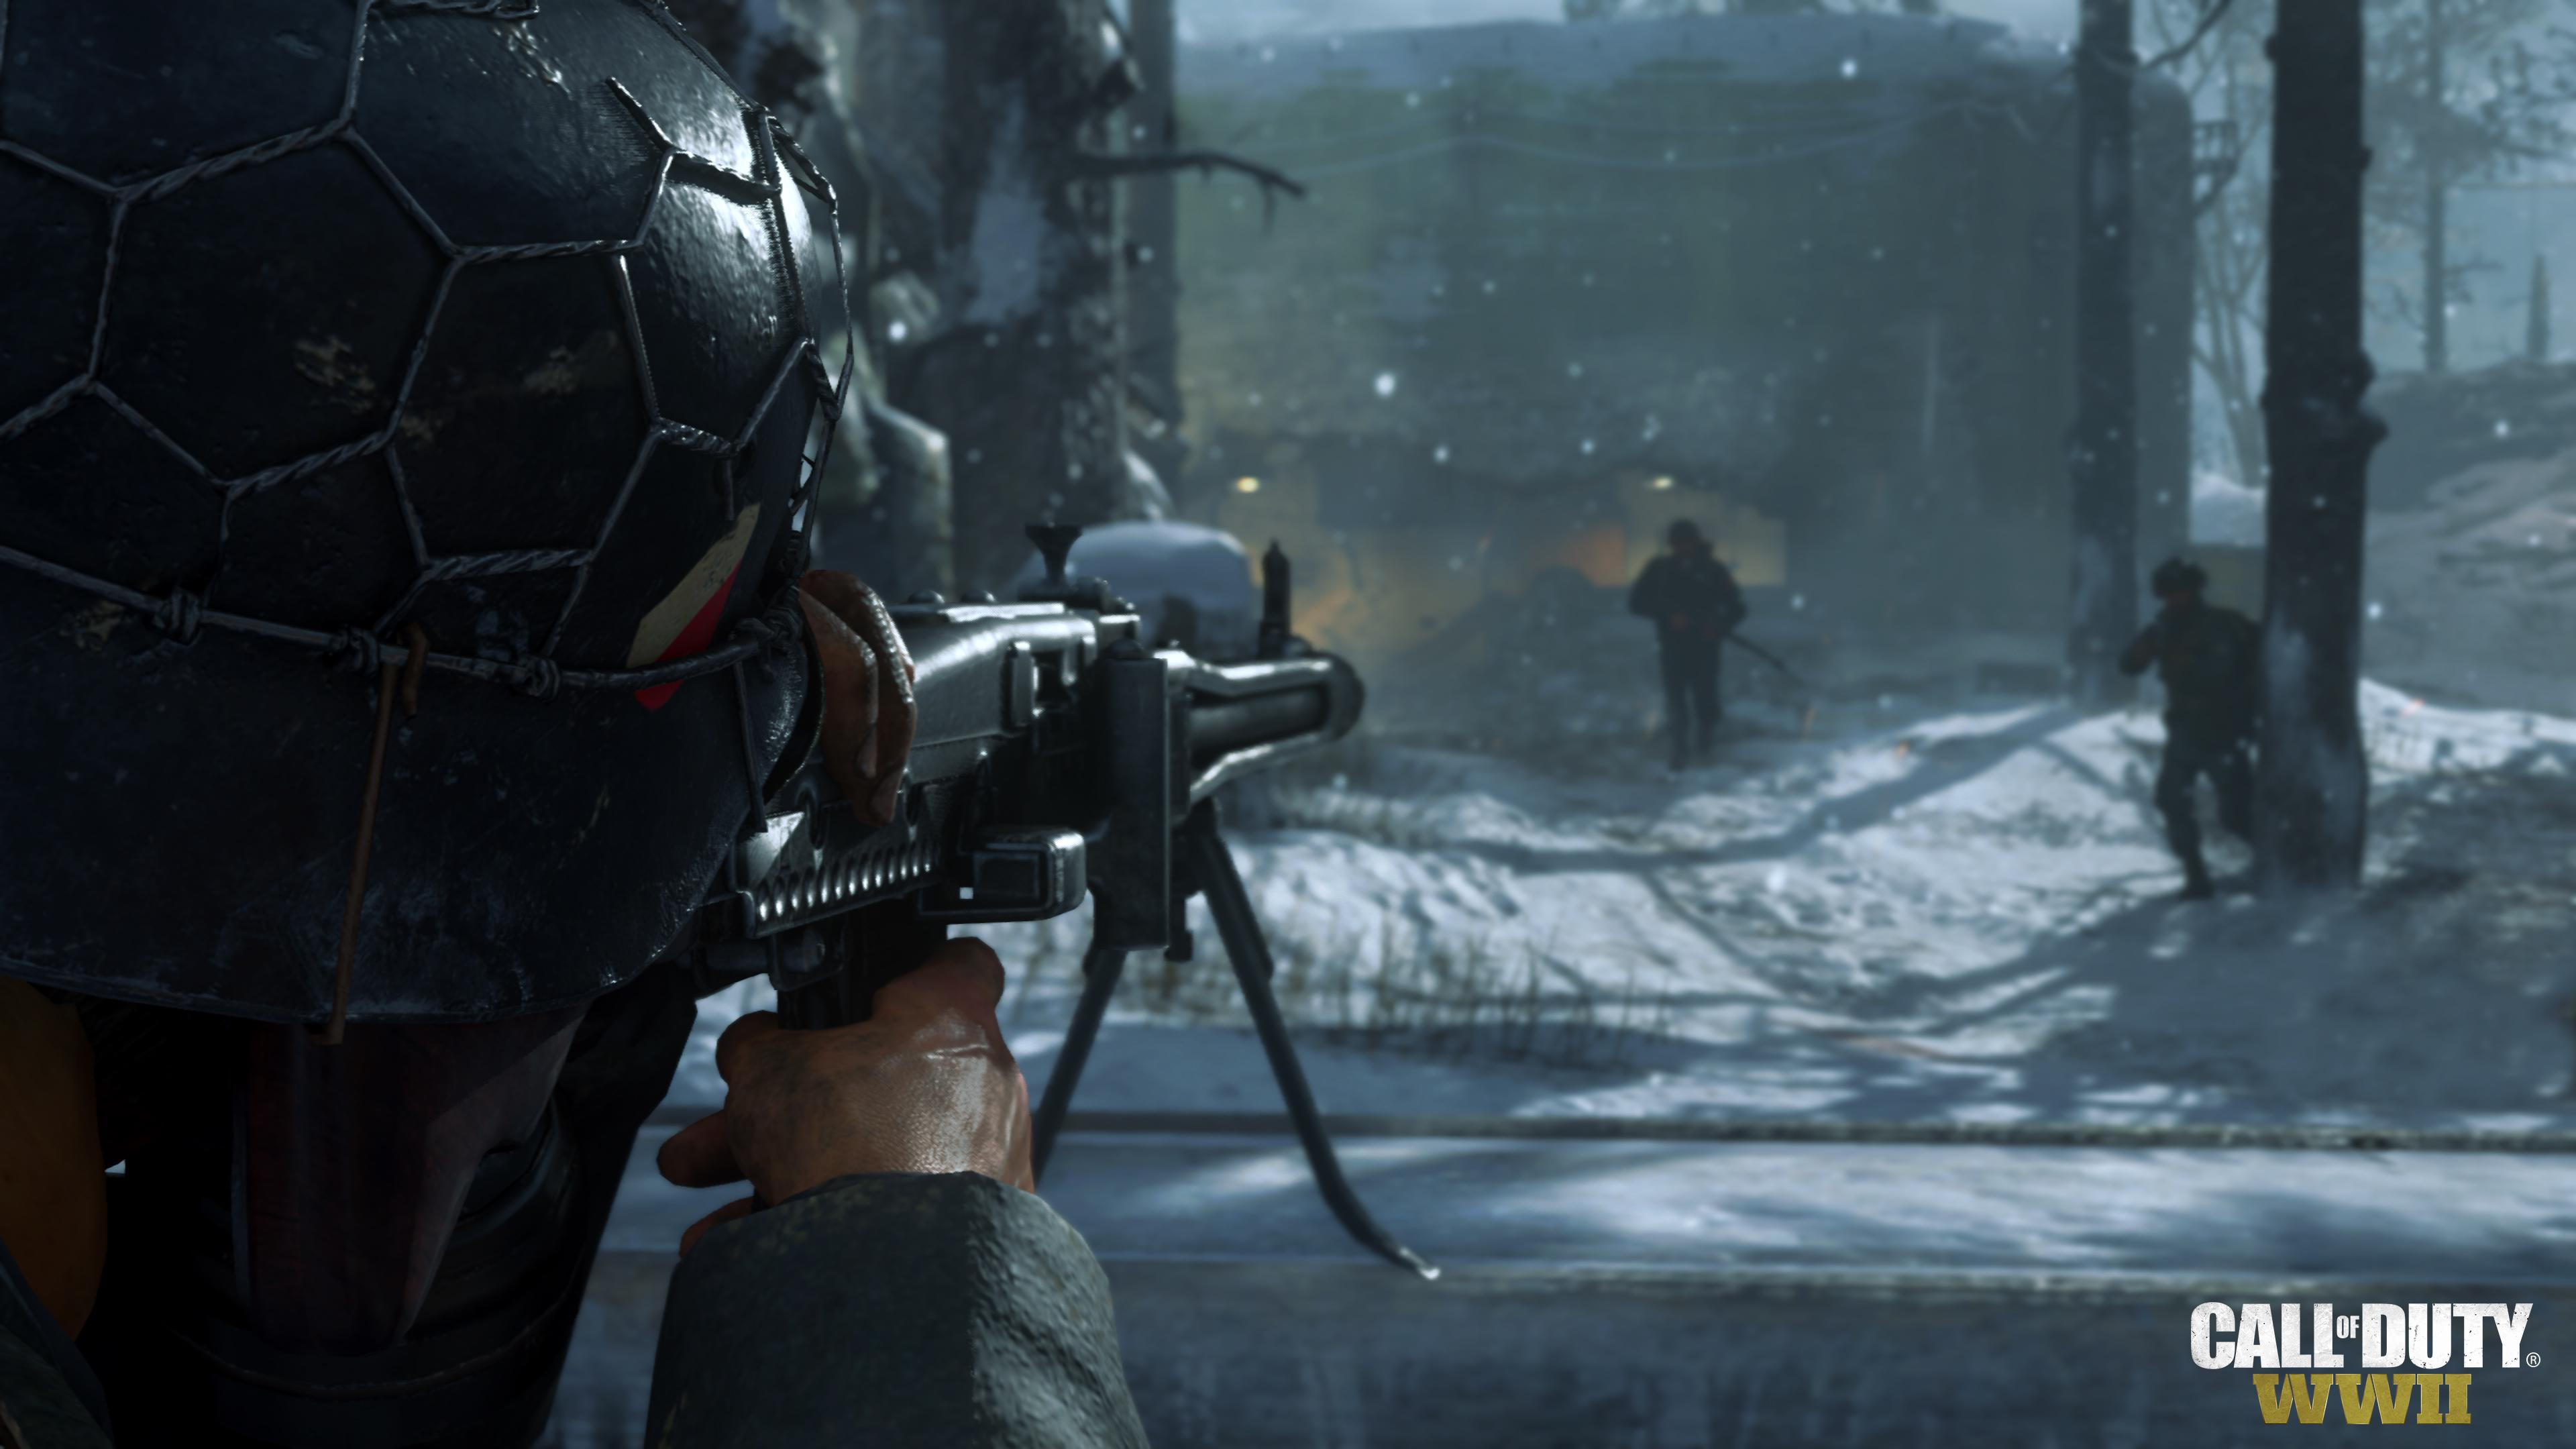 Call of Duty: WWII is being made by Sledgehammer Games - who made the brilliant Advanced Warfare